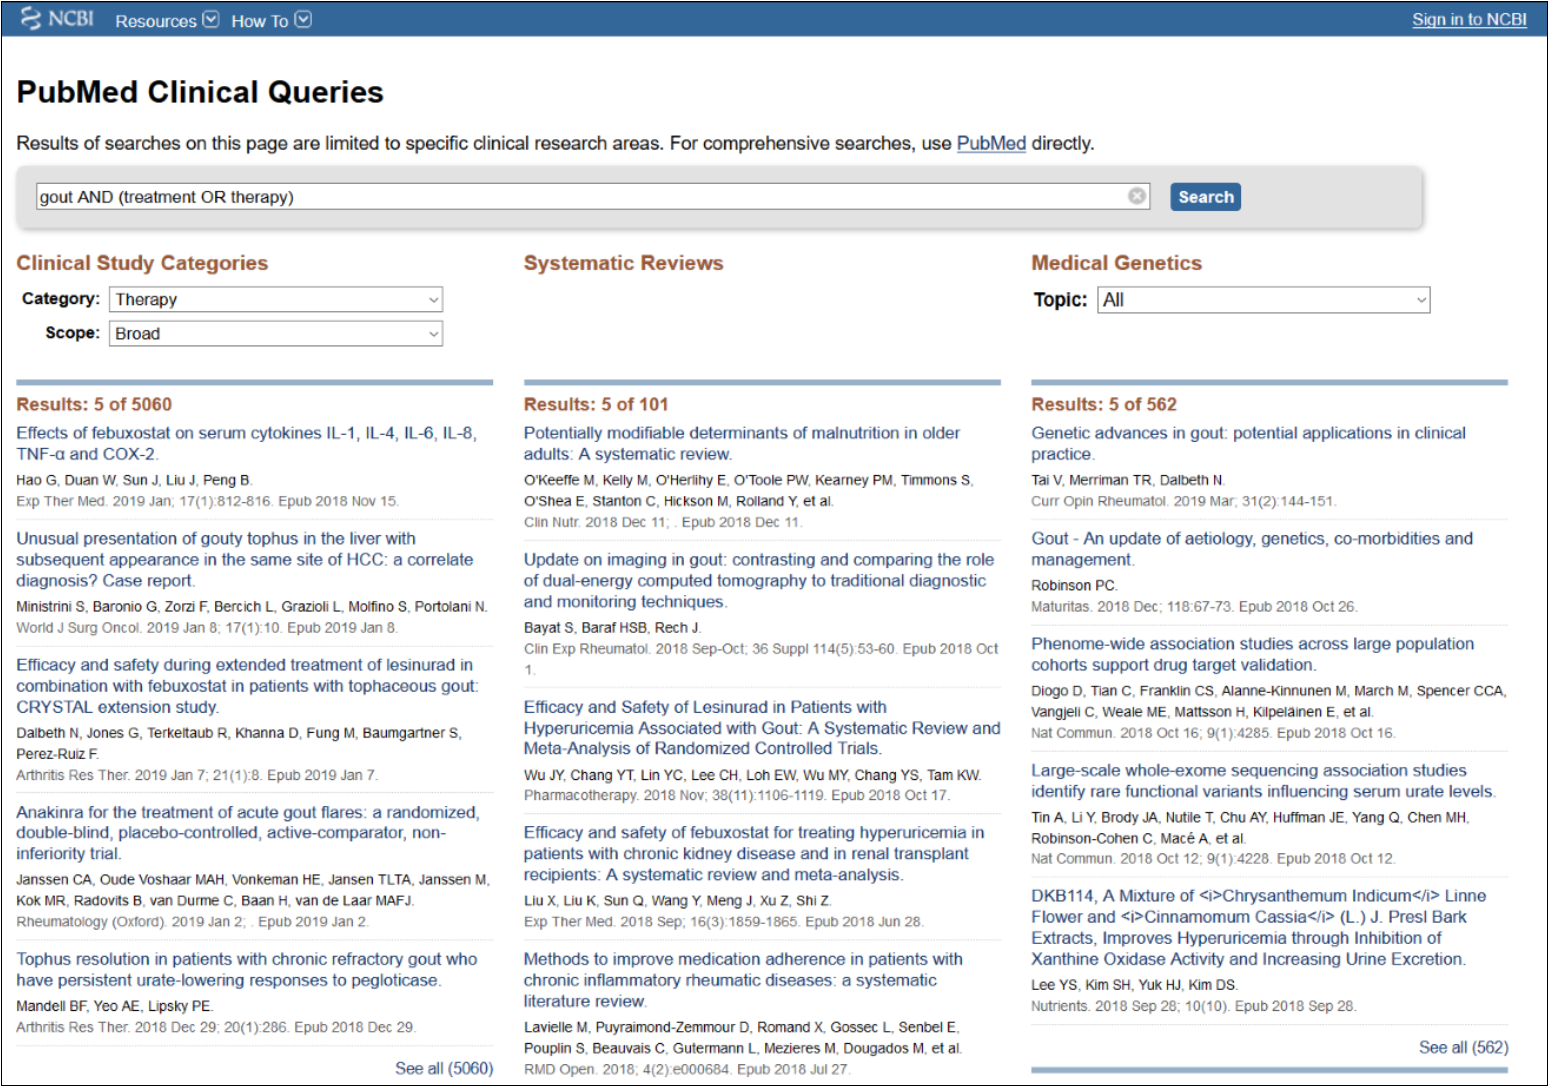 Pub Med Clinical Queries results page